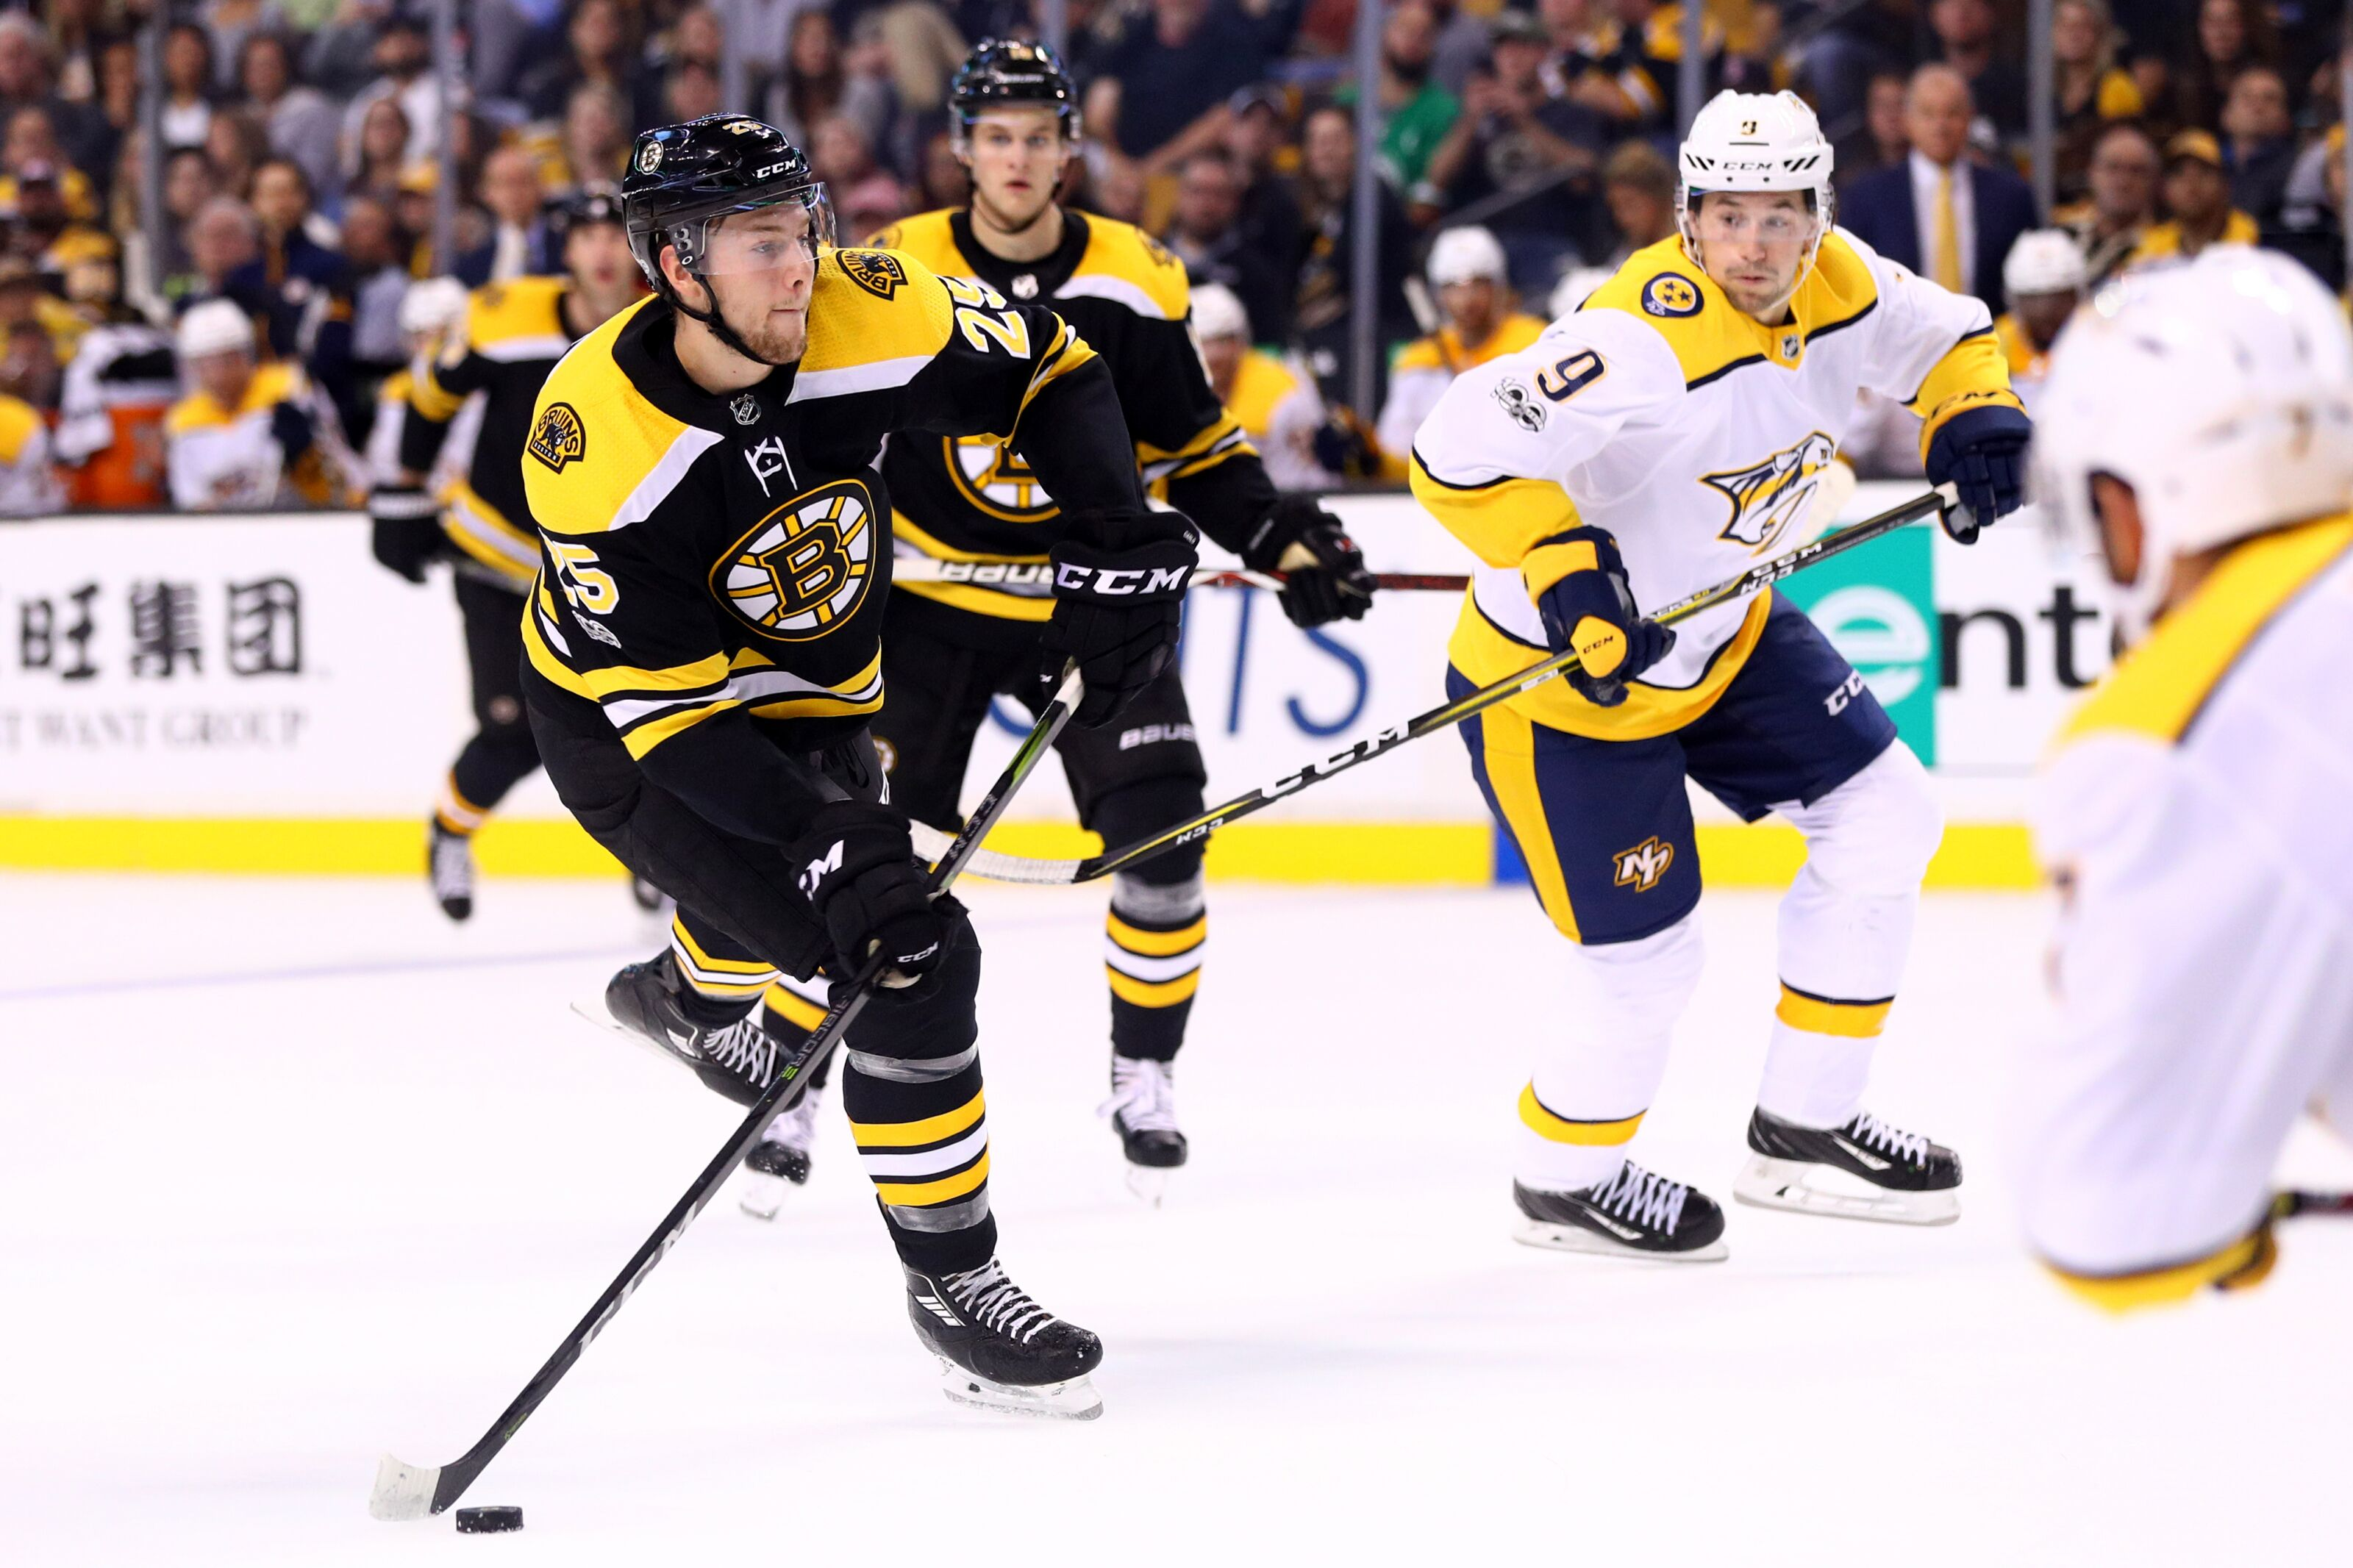 Boston Bruins player outlook 2018: Brandon Carlo will have ...